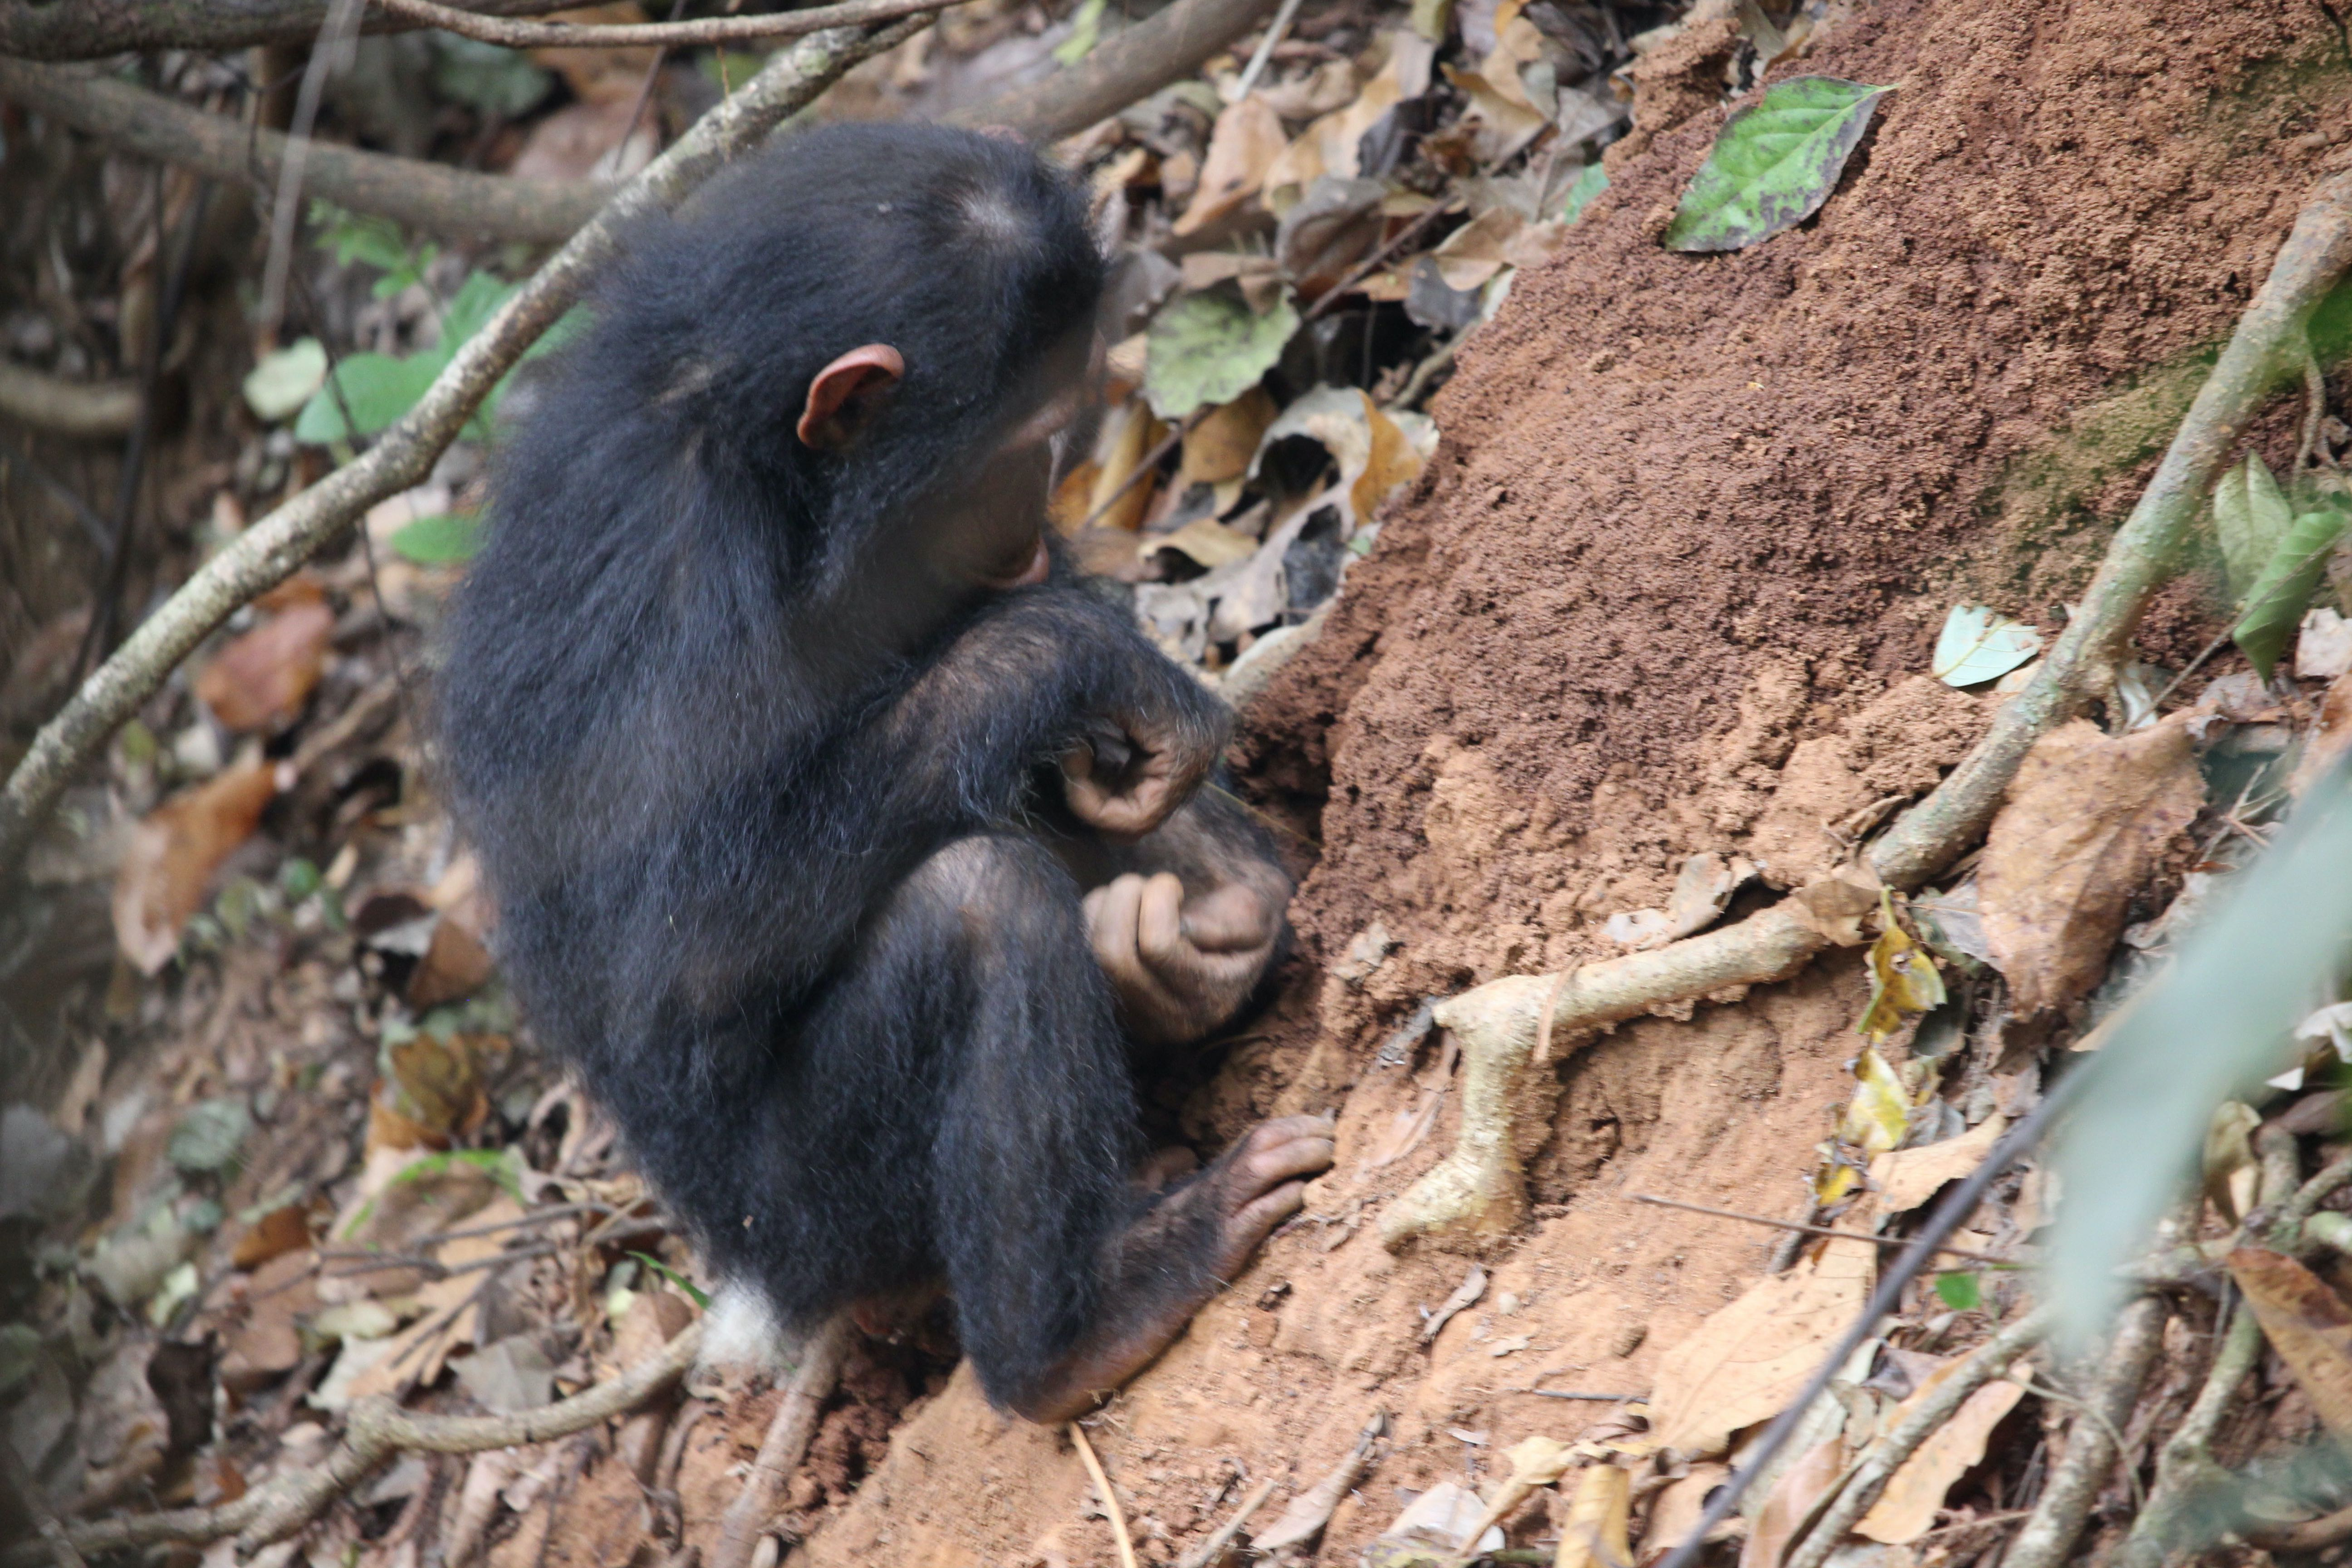 termite fishing by a young chimpanzee (Tanzania)